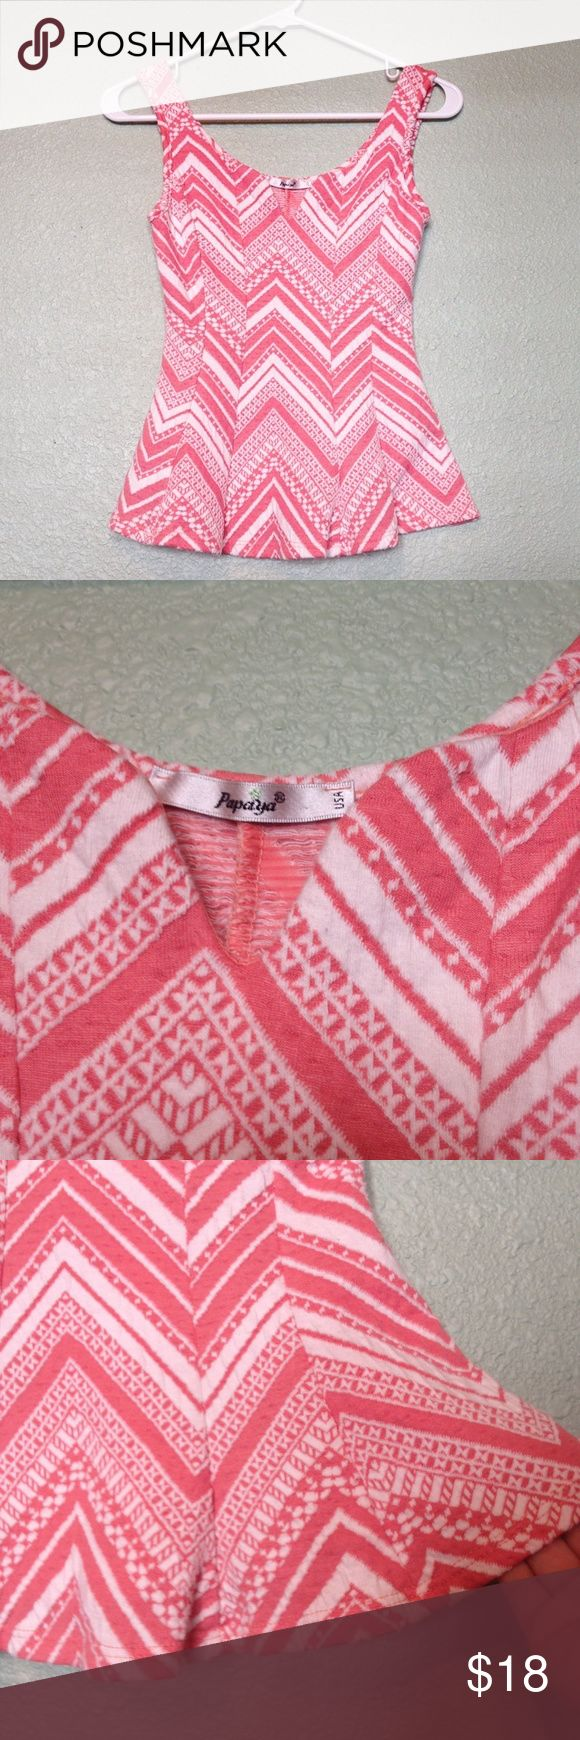 Papaya Pink Peplum Top wit Aztec Pattern Adorable pink peplum top by Papaya. Chevron Aztec pattern is so flattering! Pair with jeans and leather jacket! Papaya Tops Blouses